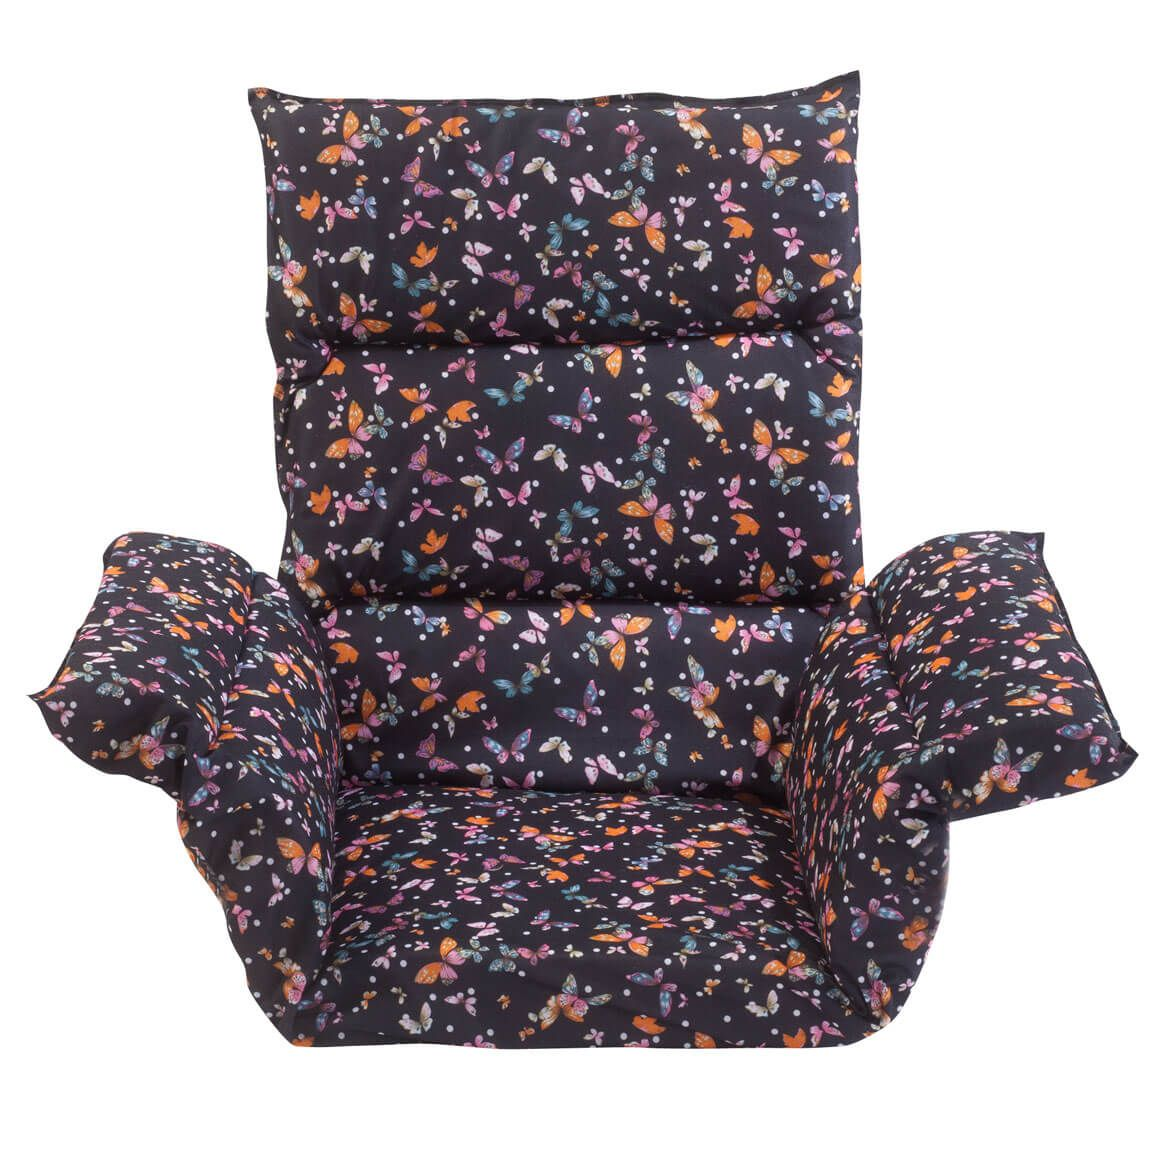 Pressure Reducing Chair Cushion Chair cushions, Rocking